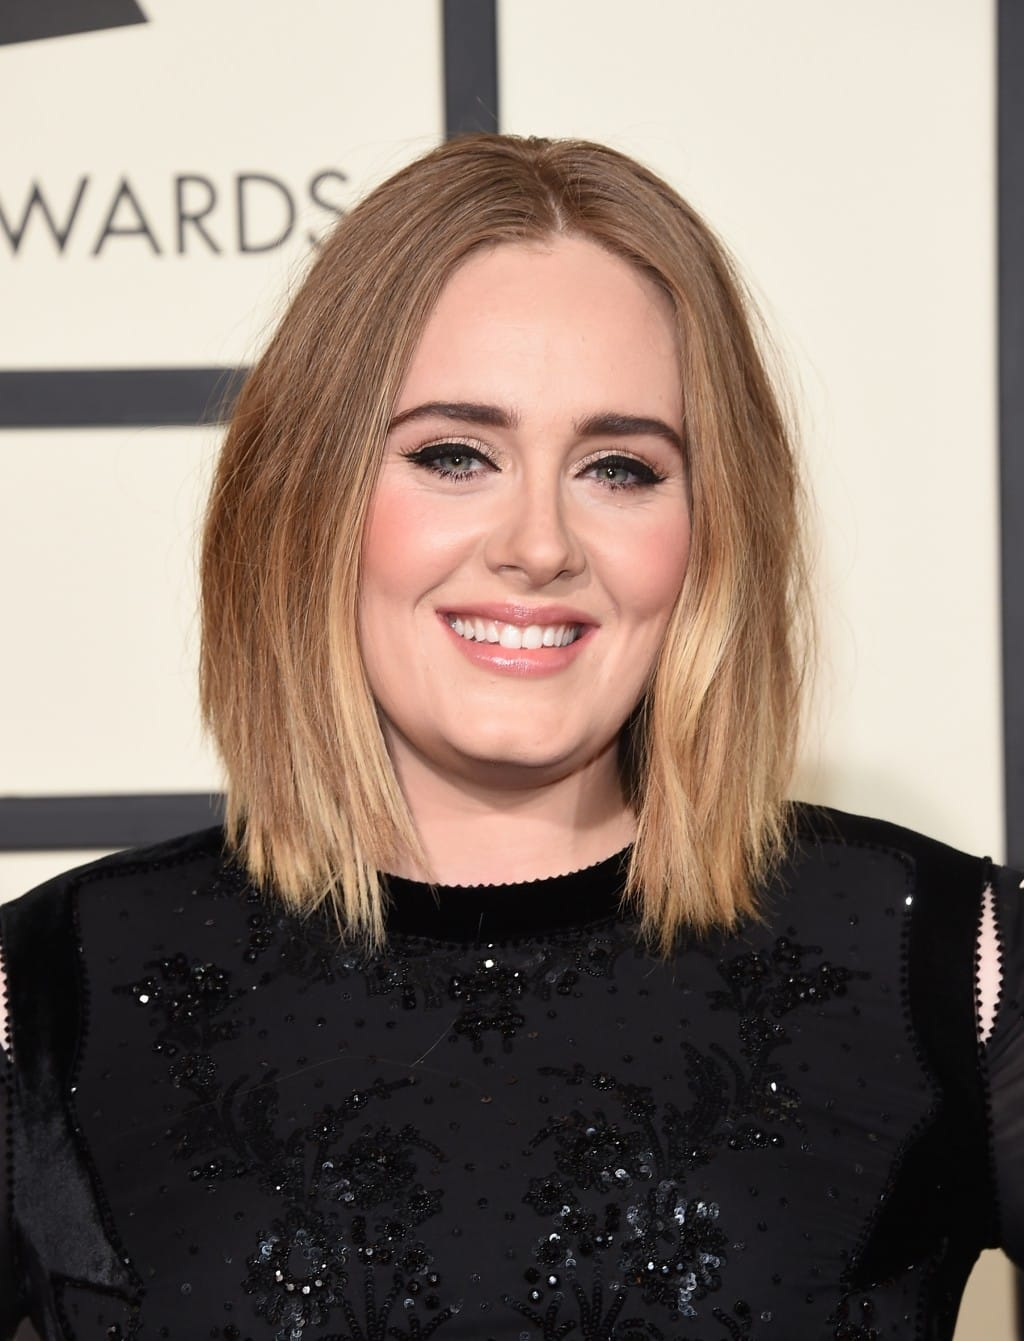 http://do5ctr7j643mo.cloudfront.net/wp-content/uploads/2016/02/16154107/Adele-Beauty-Look-Grammy-Awards-2016-1024x1341.jpg